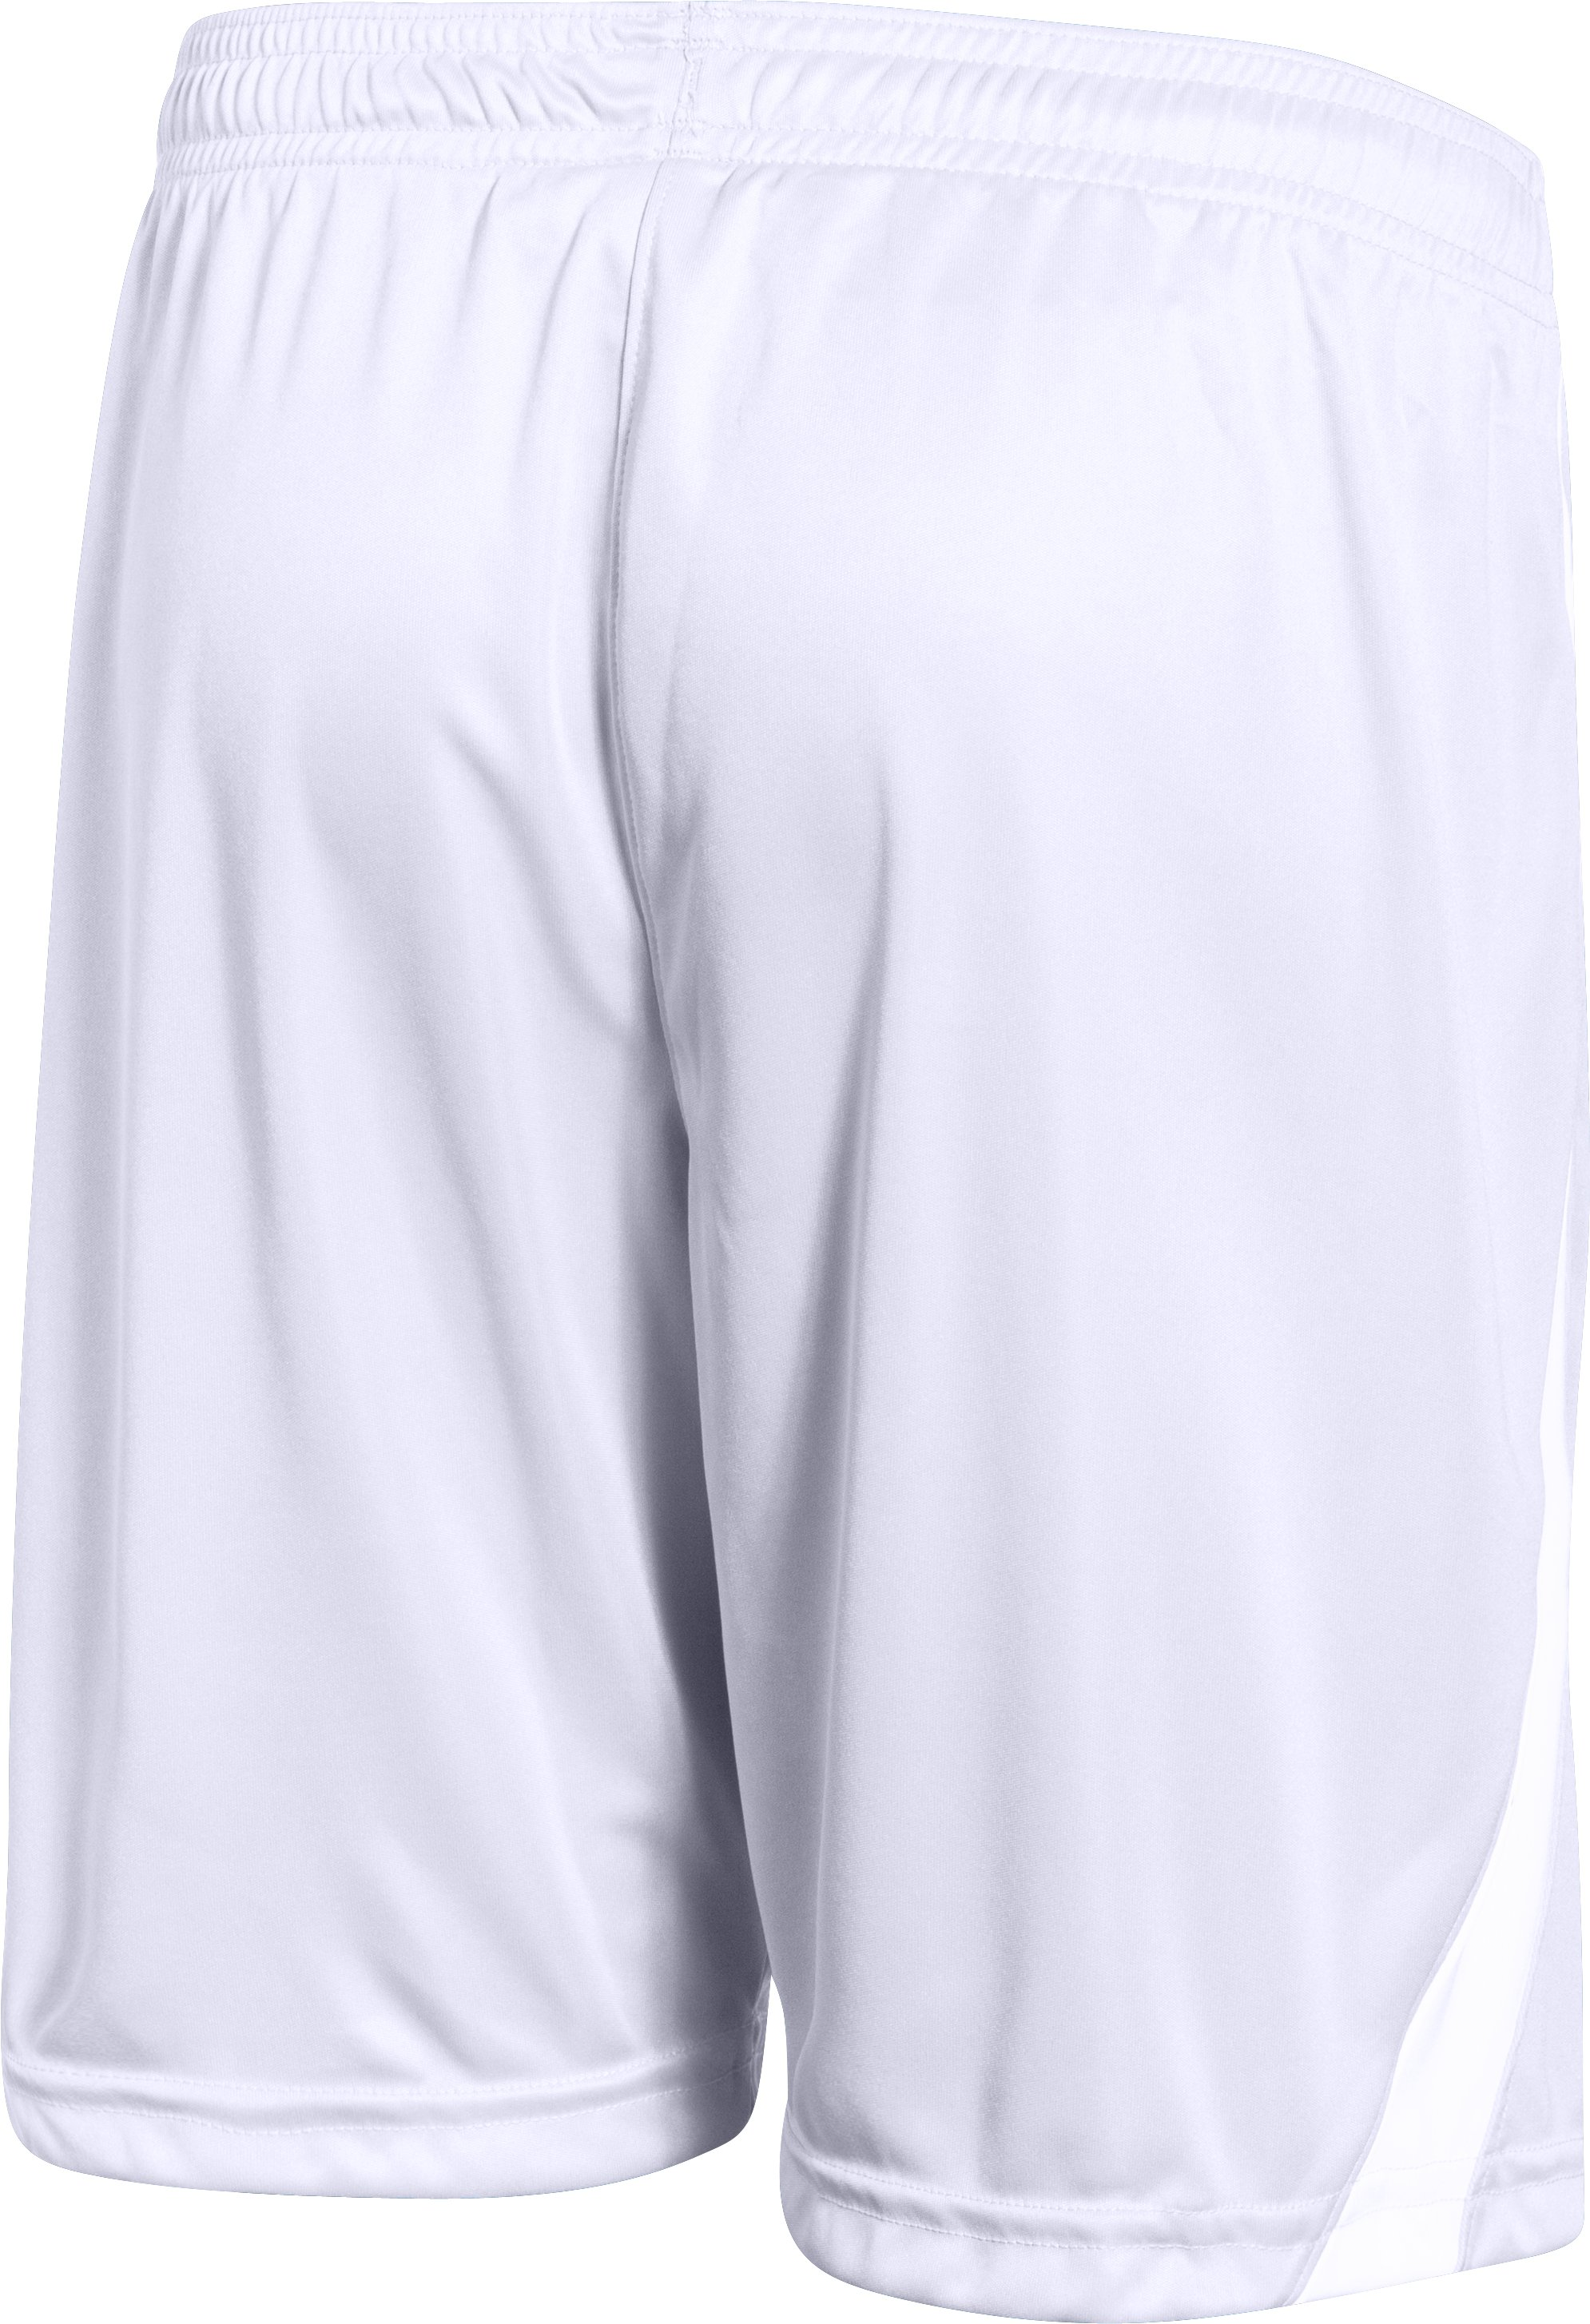 "Boys' UA Chaos 7"" Soccer Shorts, White, undefined"